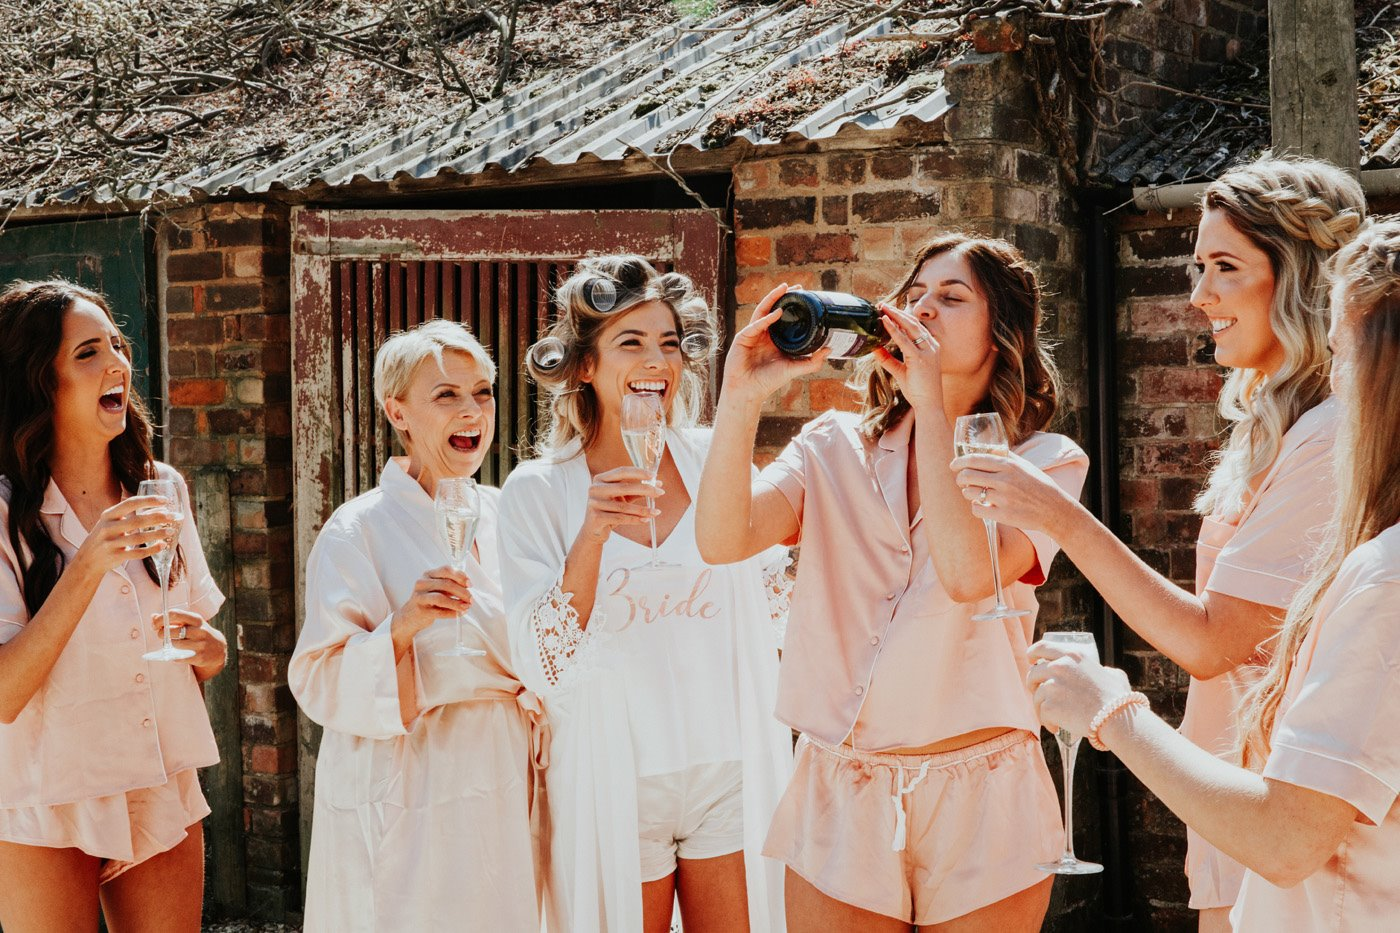 Bridal party in pink and white robes and pyjamas laugh as the bride drinks prosecco out of the bottle